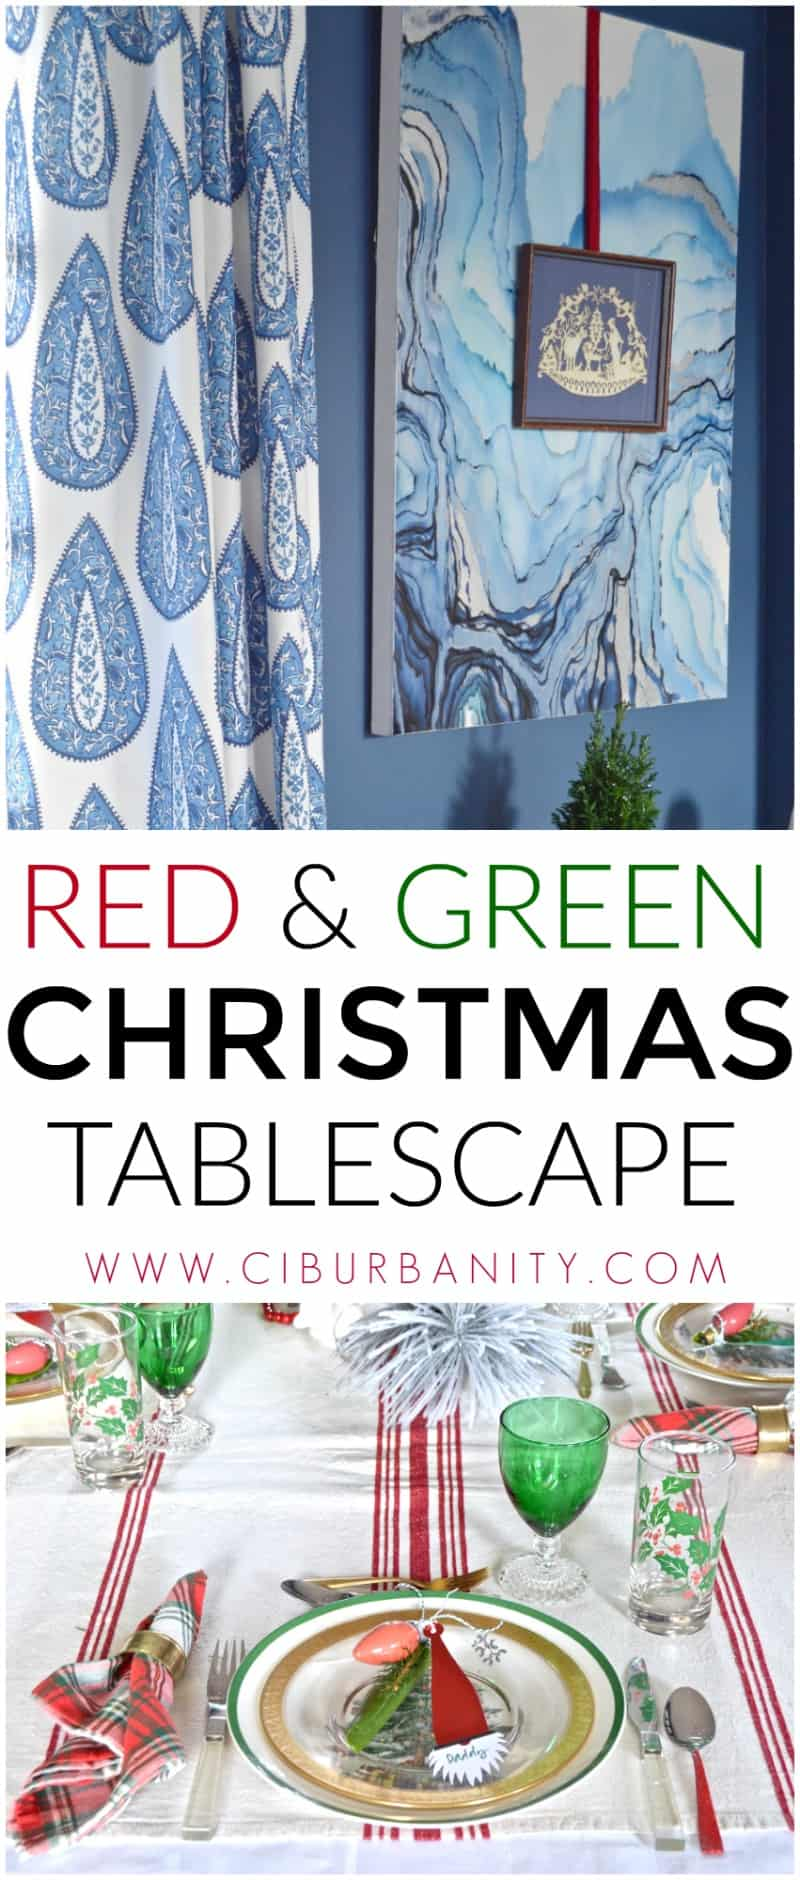 red and green christmas table for our eclectic blue and white dining room.